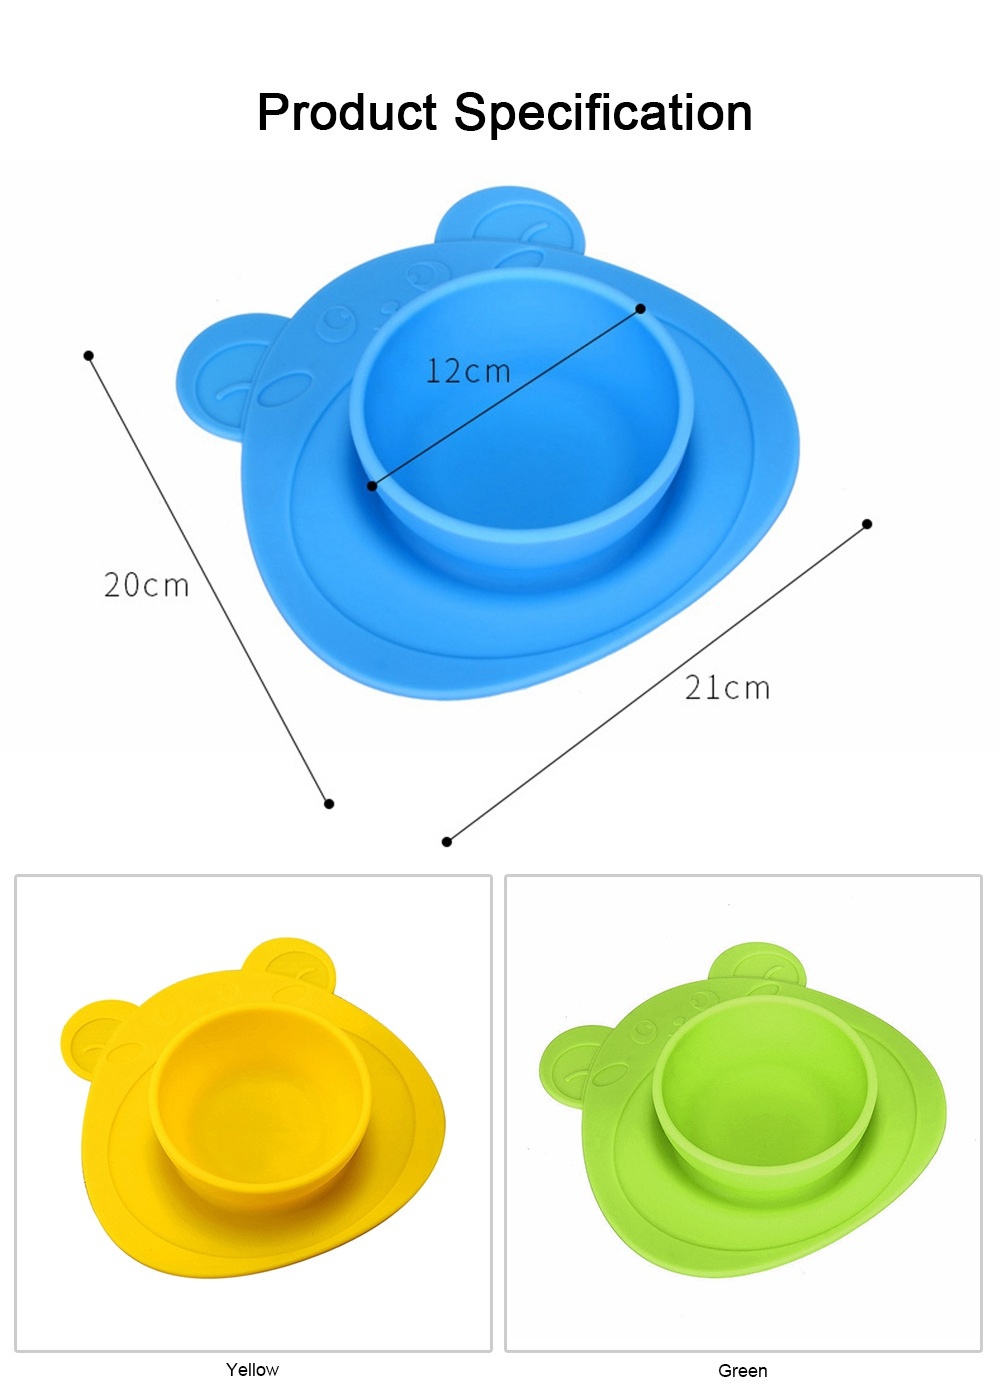 2 Pieces Silicone Suction Plates for Toddlers Food Feeding Tray for Babies and Kids Silica Gel Food Bowl 5